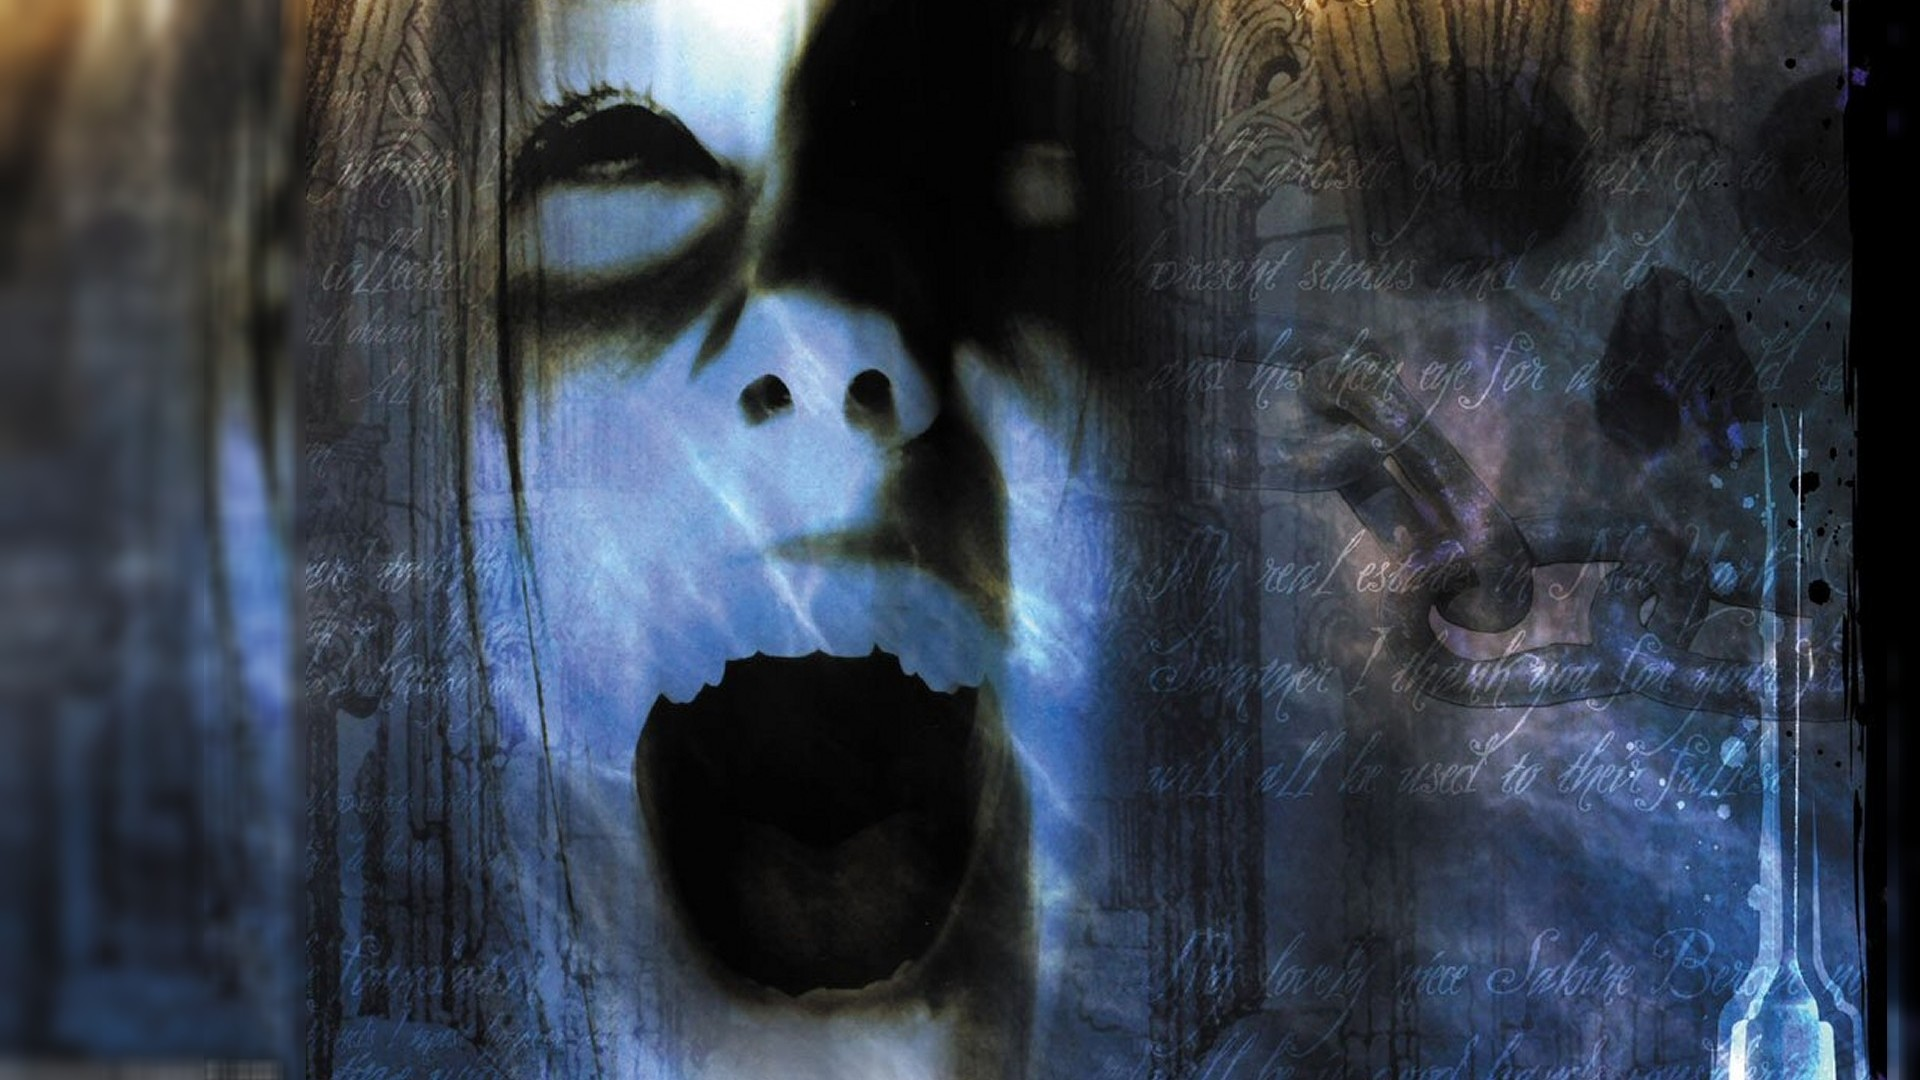 1920x1080, How To Download   Data Id 273766   Data - Halloween Horror Background For Pc - HD Wallpaper